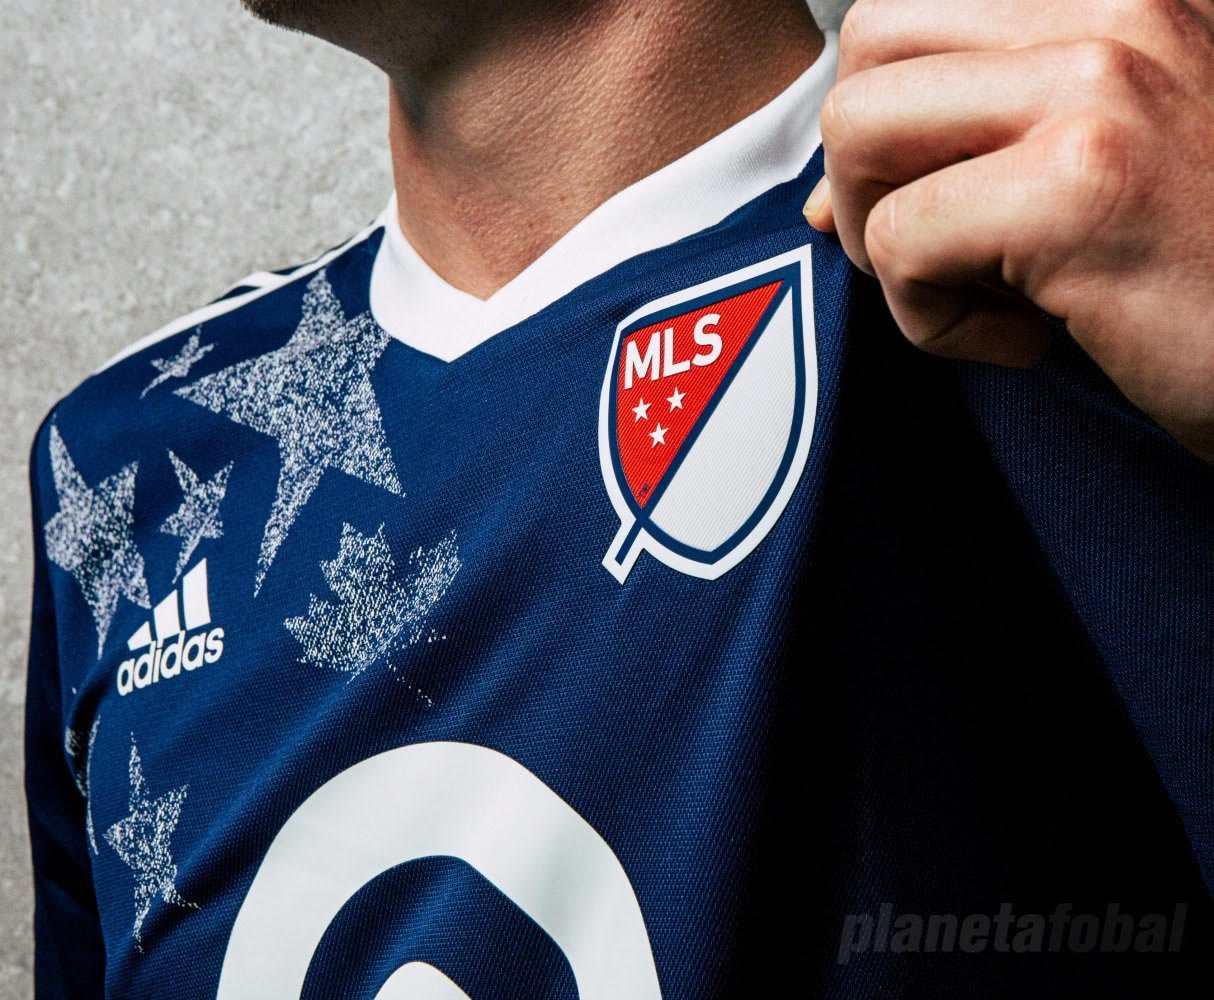 Camiseta Adidas para el MLS All-Star 2017 | Foto Web Oficial